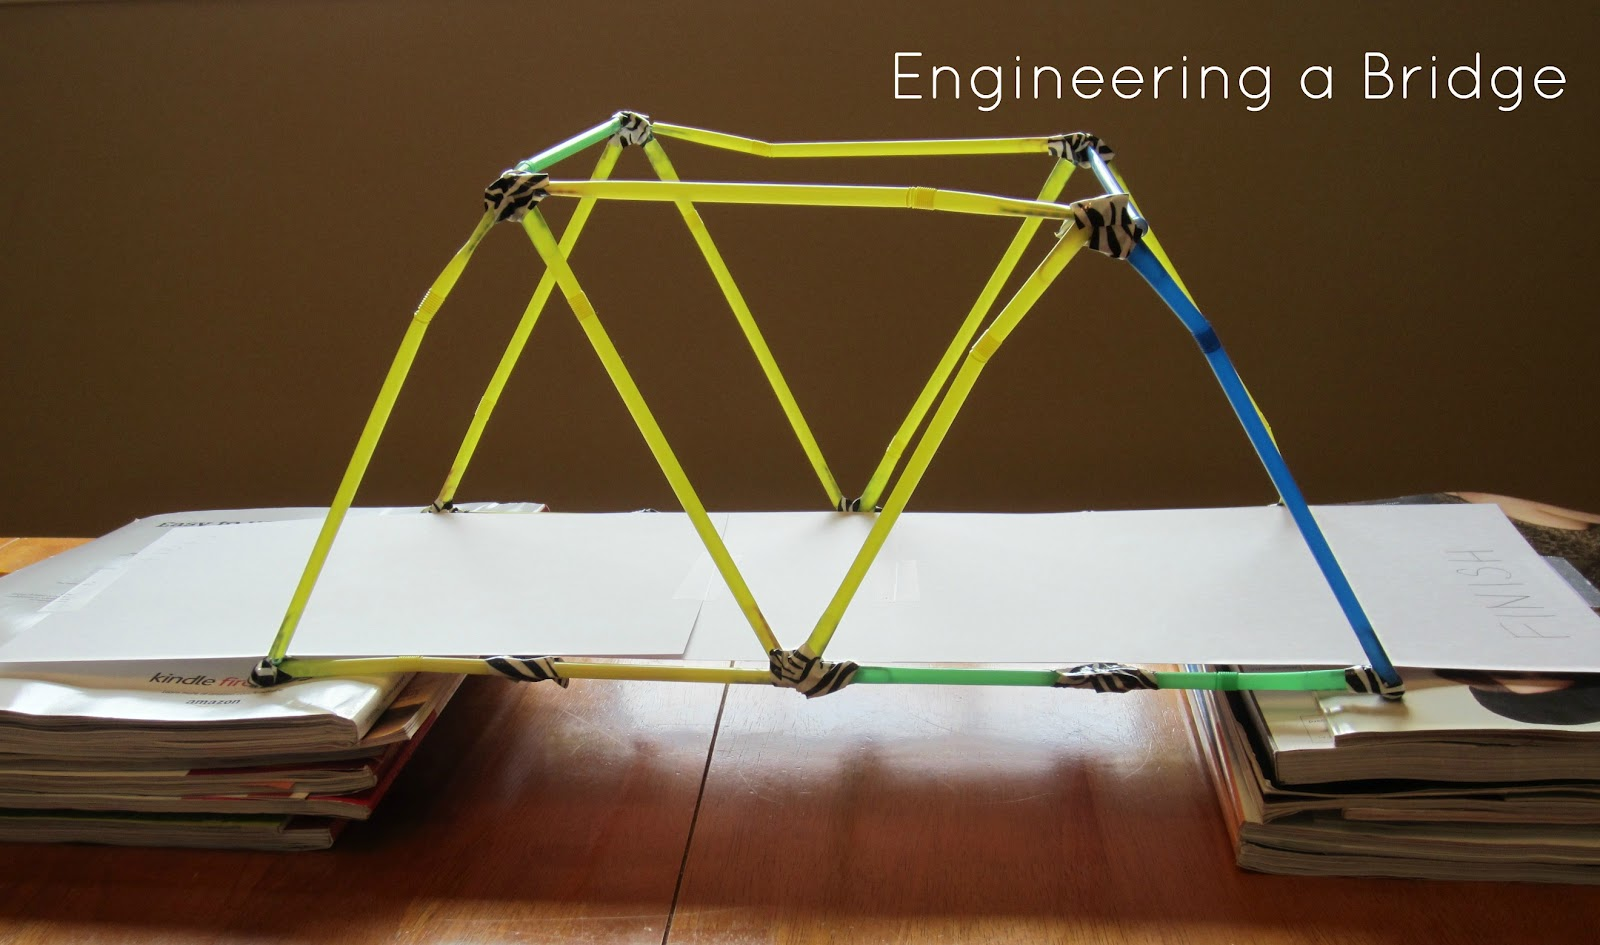 Mechanical engineering and building bridges